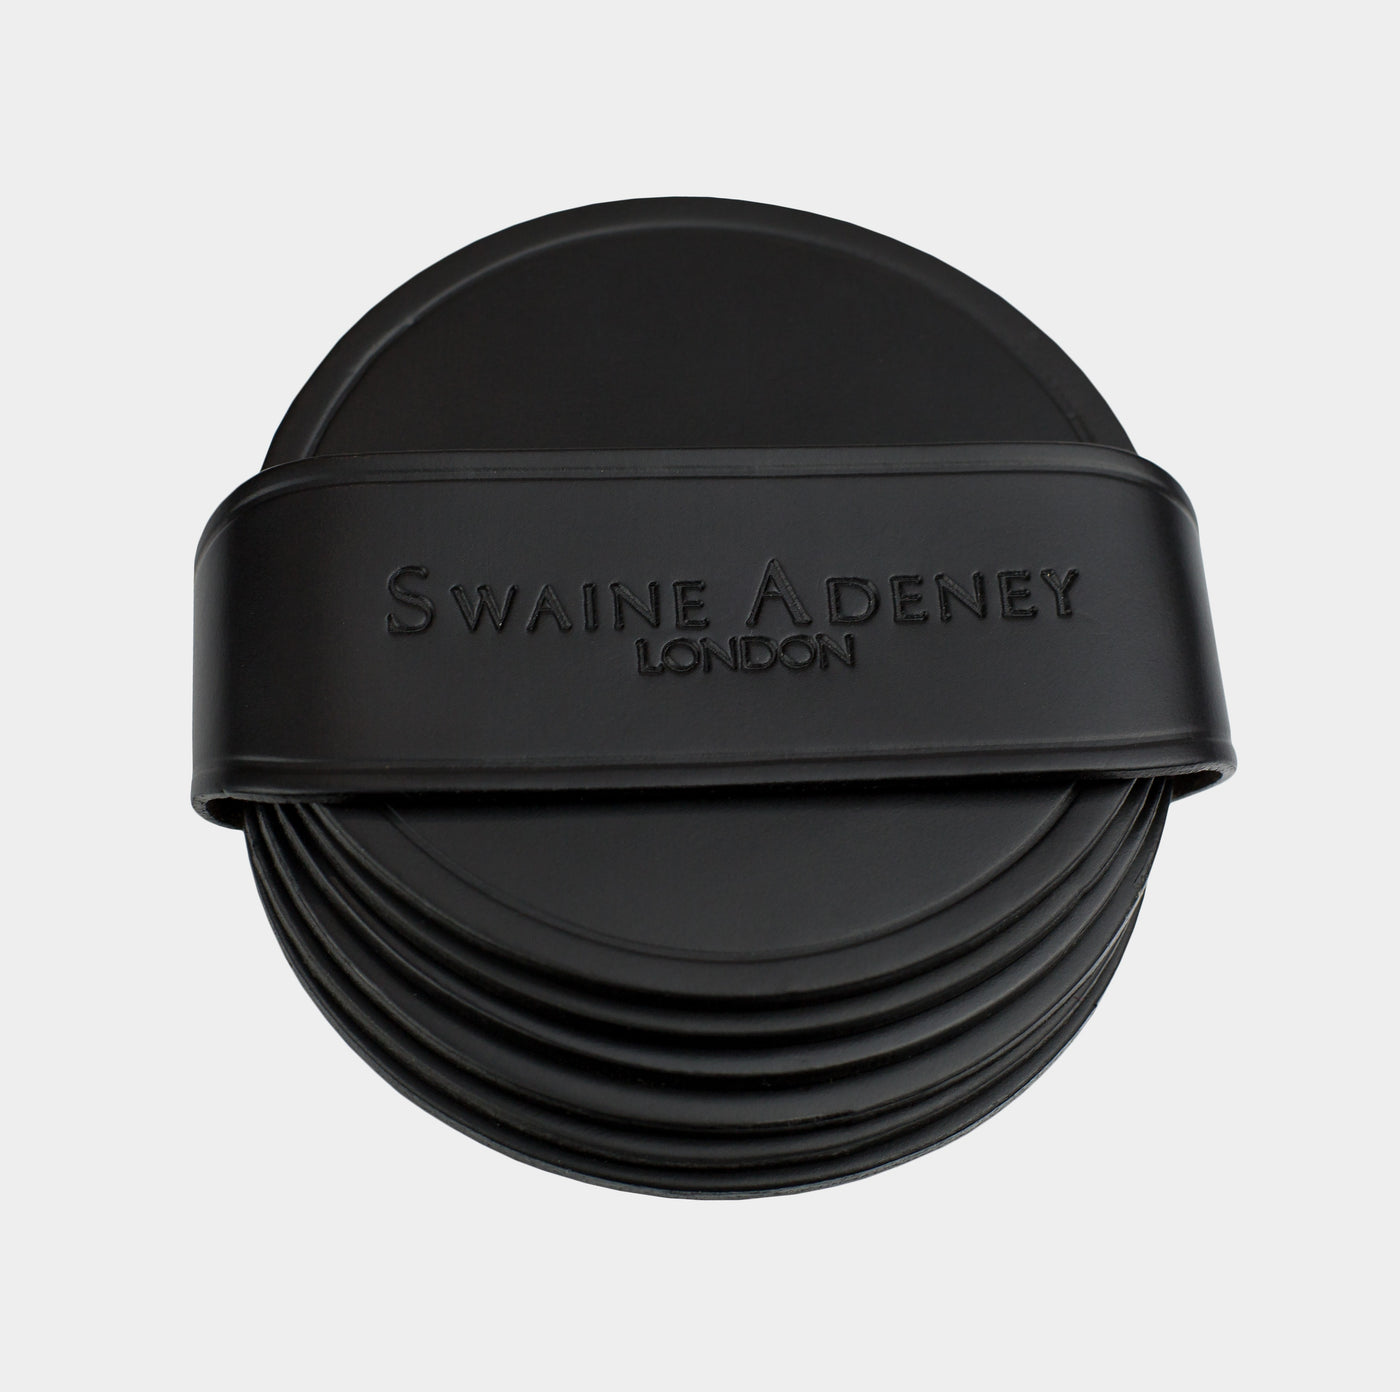 Swaine Adeney Brigg Round Coasters - Black